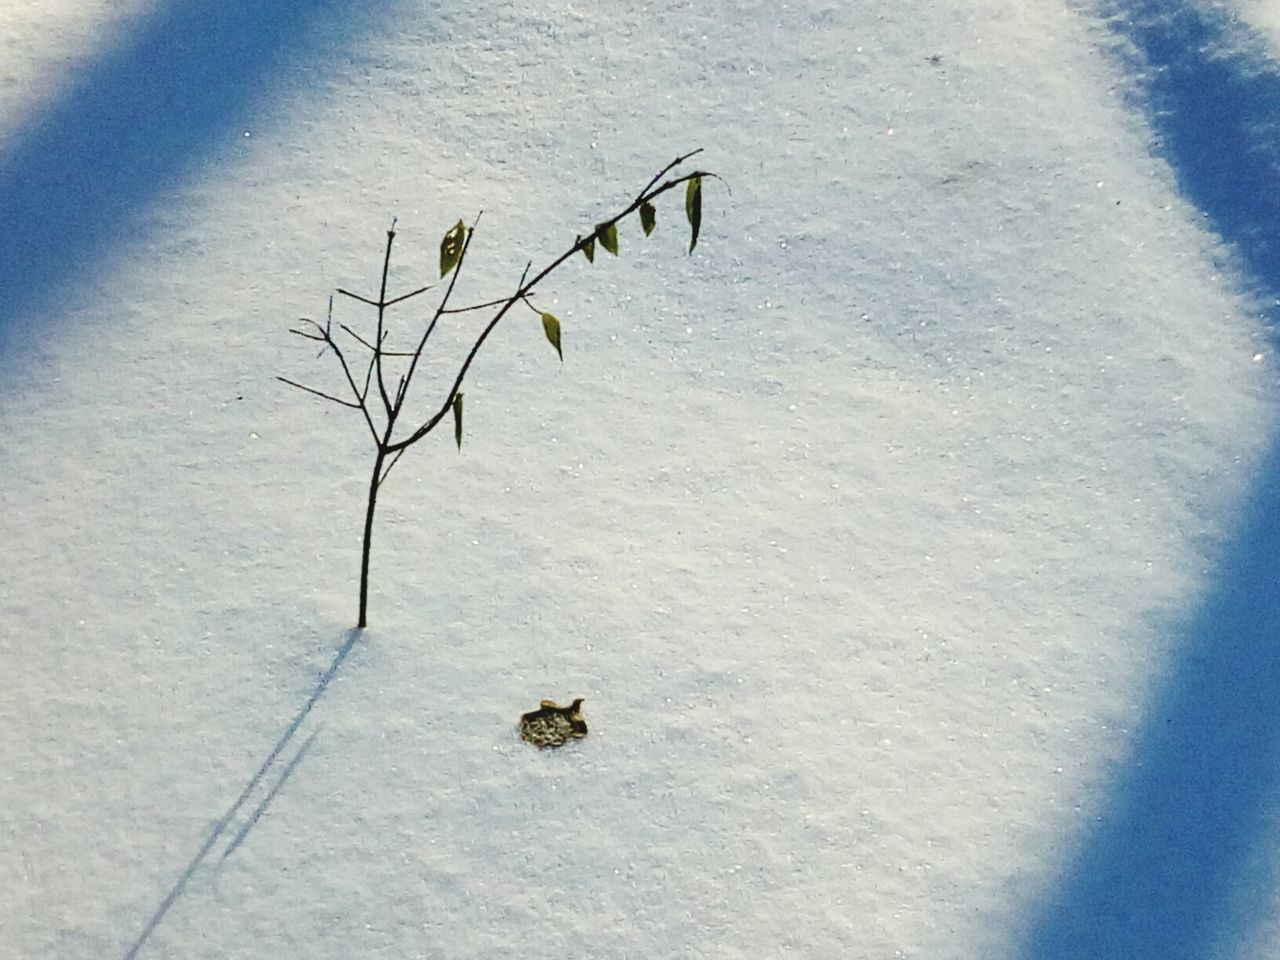 Nature Sand Plant No People Tranquility Close-up Day Outdoors Beauty In Nature Cold Temperature Tree Tranquility Forest EyeEm Nature Lover Beauty In Nature The Great Outdoors - 2016 EyeEm Awards Nature_collection Tranquil Scene Frozen Bare Tree Sunlight Plant Nature Winter Snow